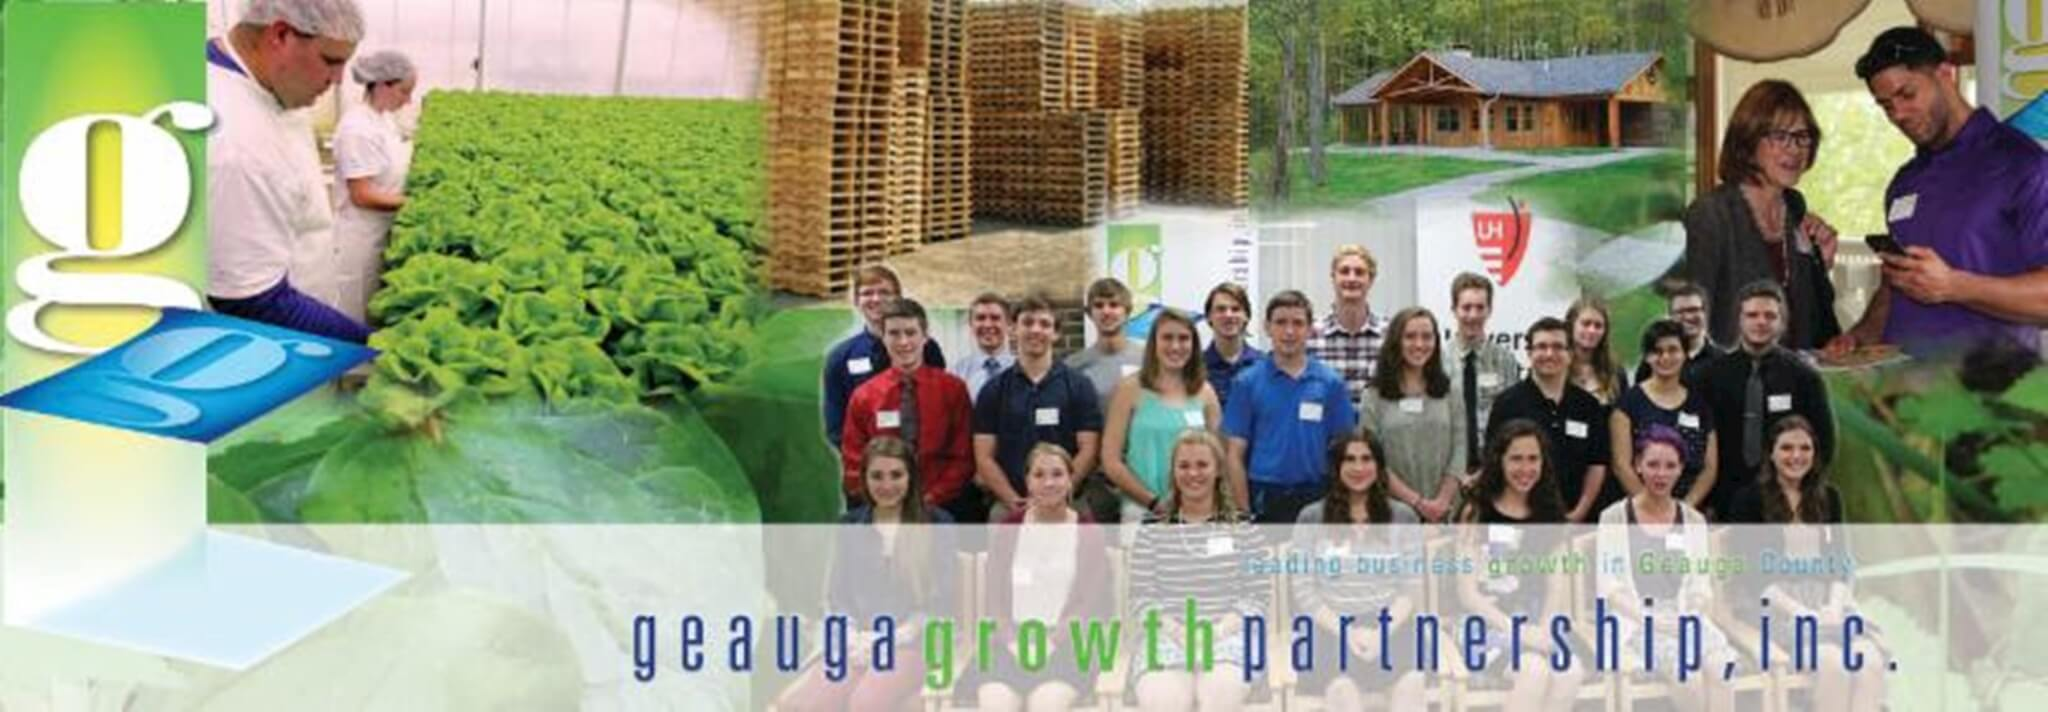 Volunteers Needed for Geauga Growth Partnership Junior Career Day Programs on January 9 & January 11